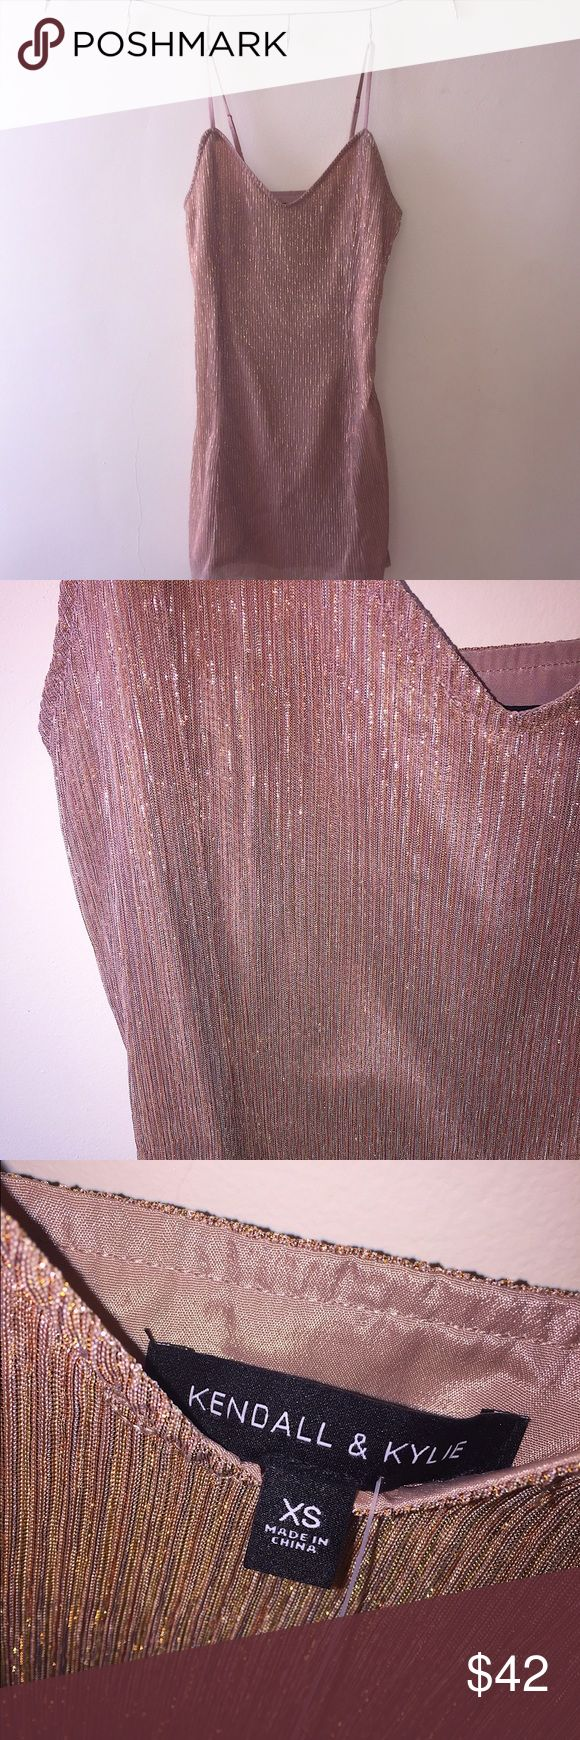 ✨ Kendall & Kylie Rose Gold Party Dress ✨ ❂ Kendall & Kylie dress purchased from PacSun   ❂ NWT - never worn!  ❂ Small pull on the side with the zipper (pictured)   ❂ Feel free to make an offer! ✨ Kendall & Kylie Dresses